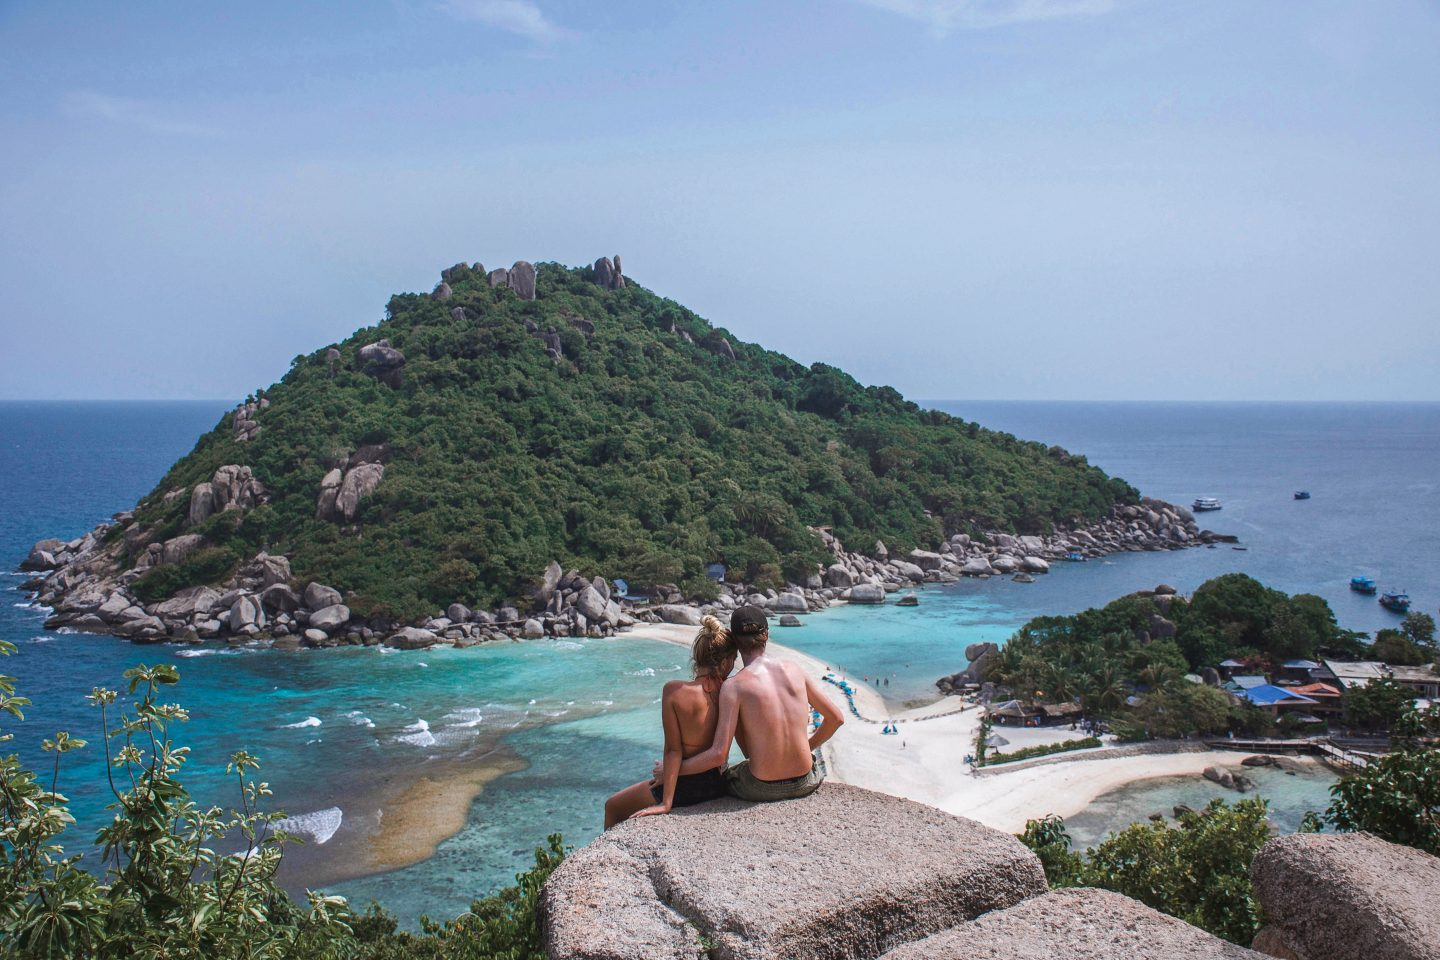 Koh Tao Viewpoints – The Best Viewpoints On Koh Tao